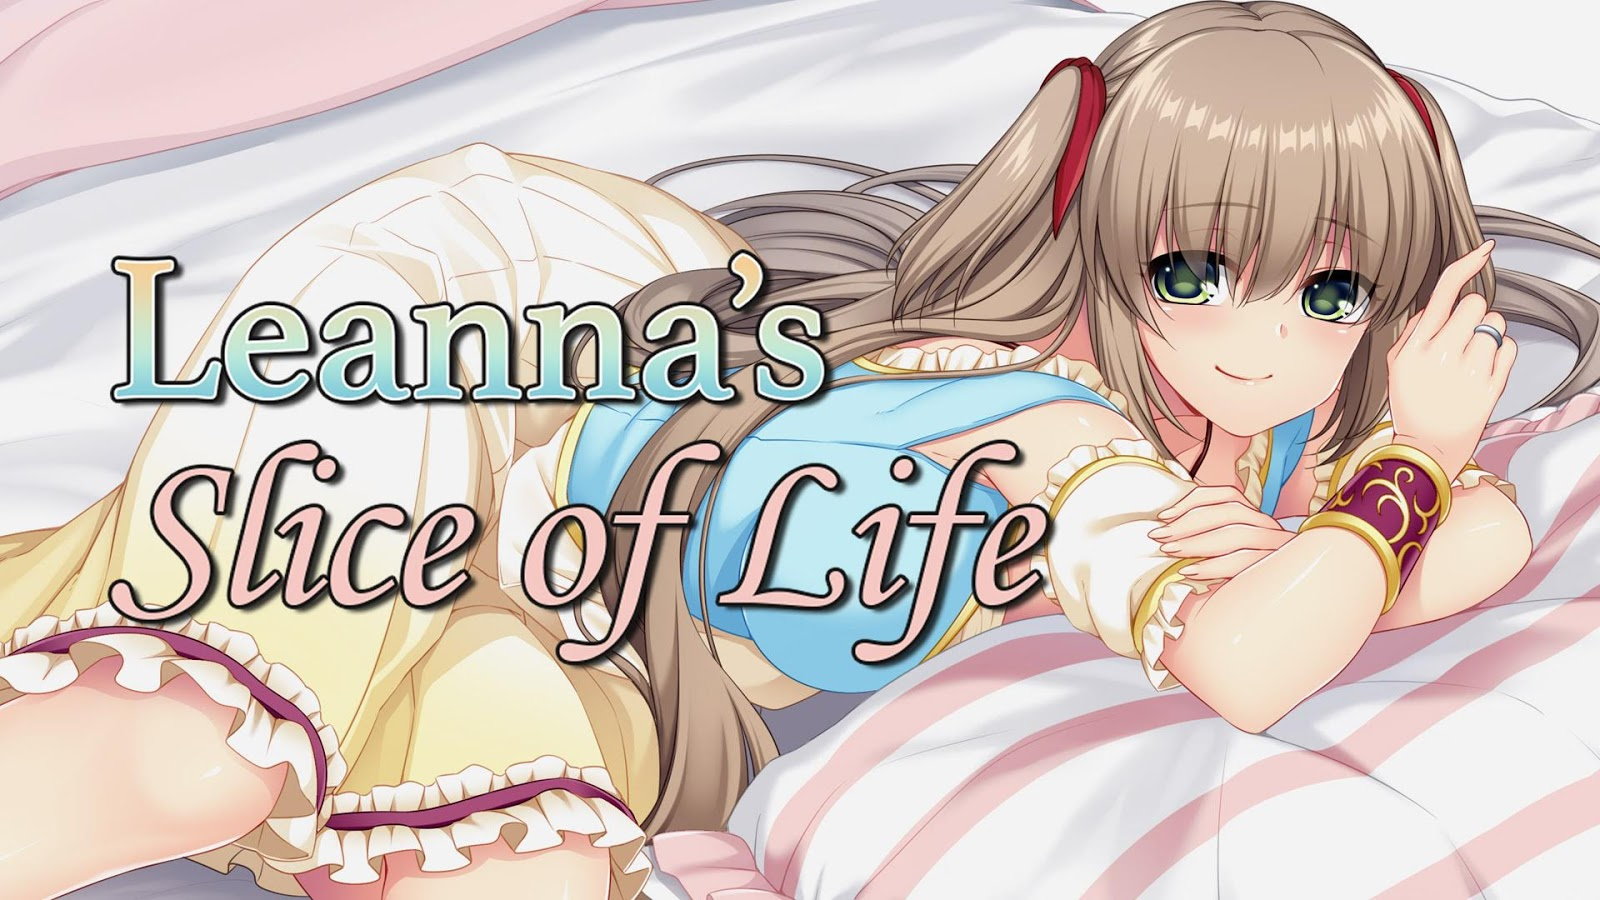 leannas-slice-of-life